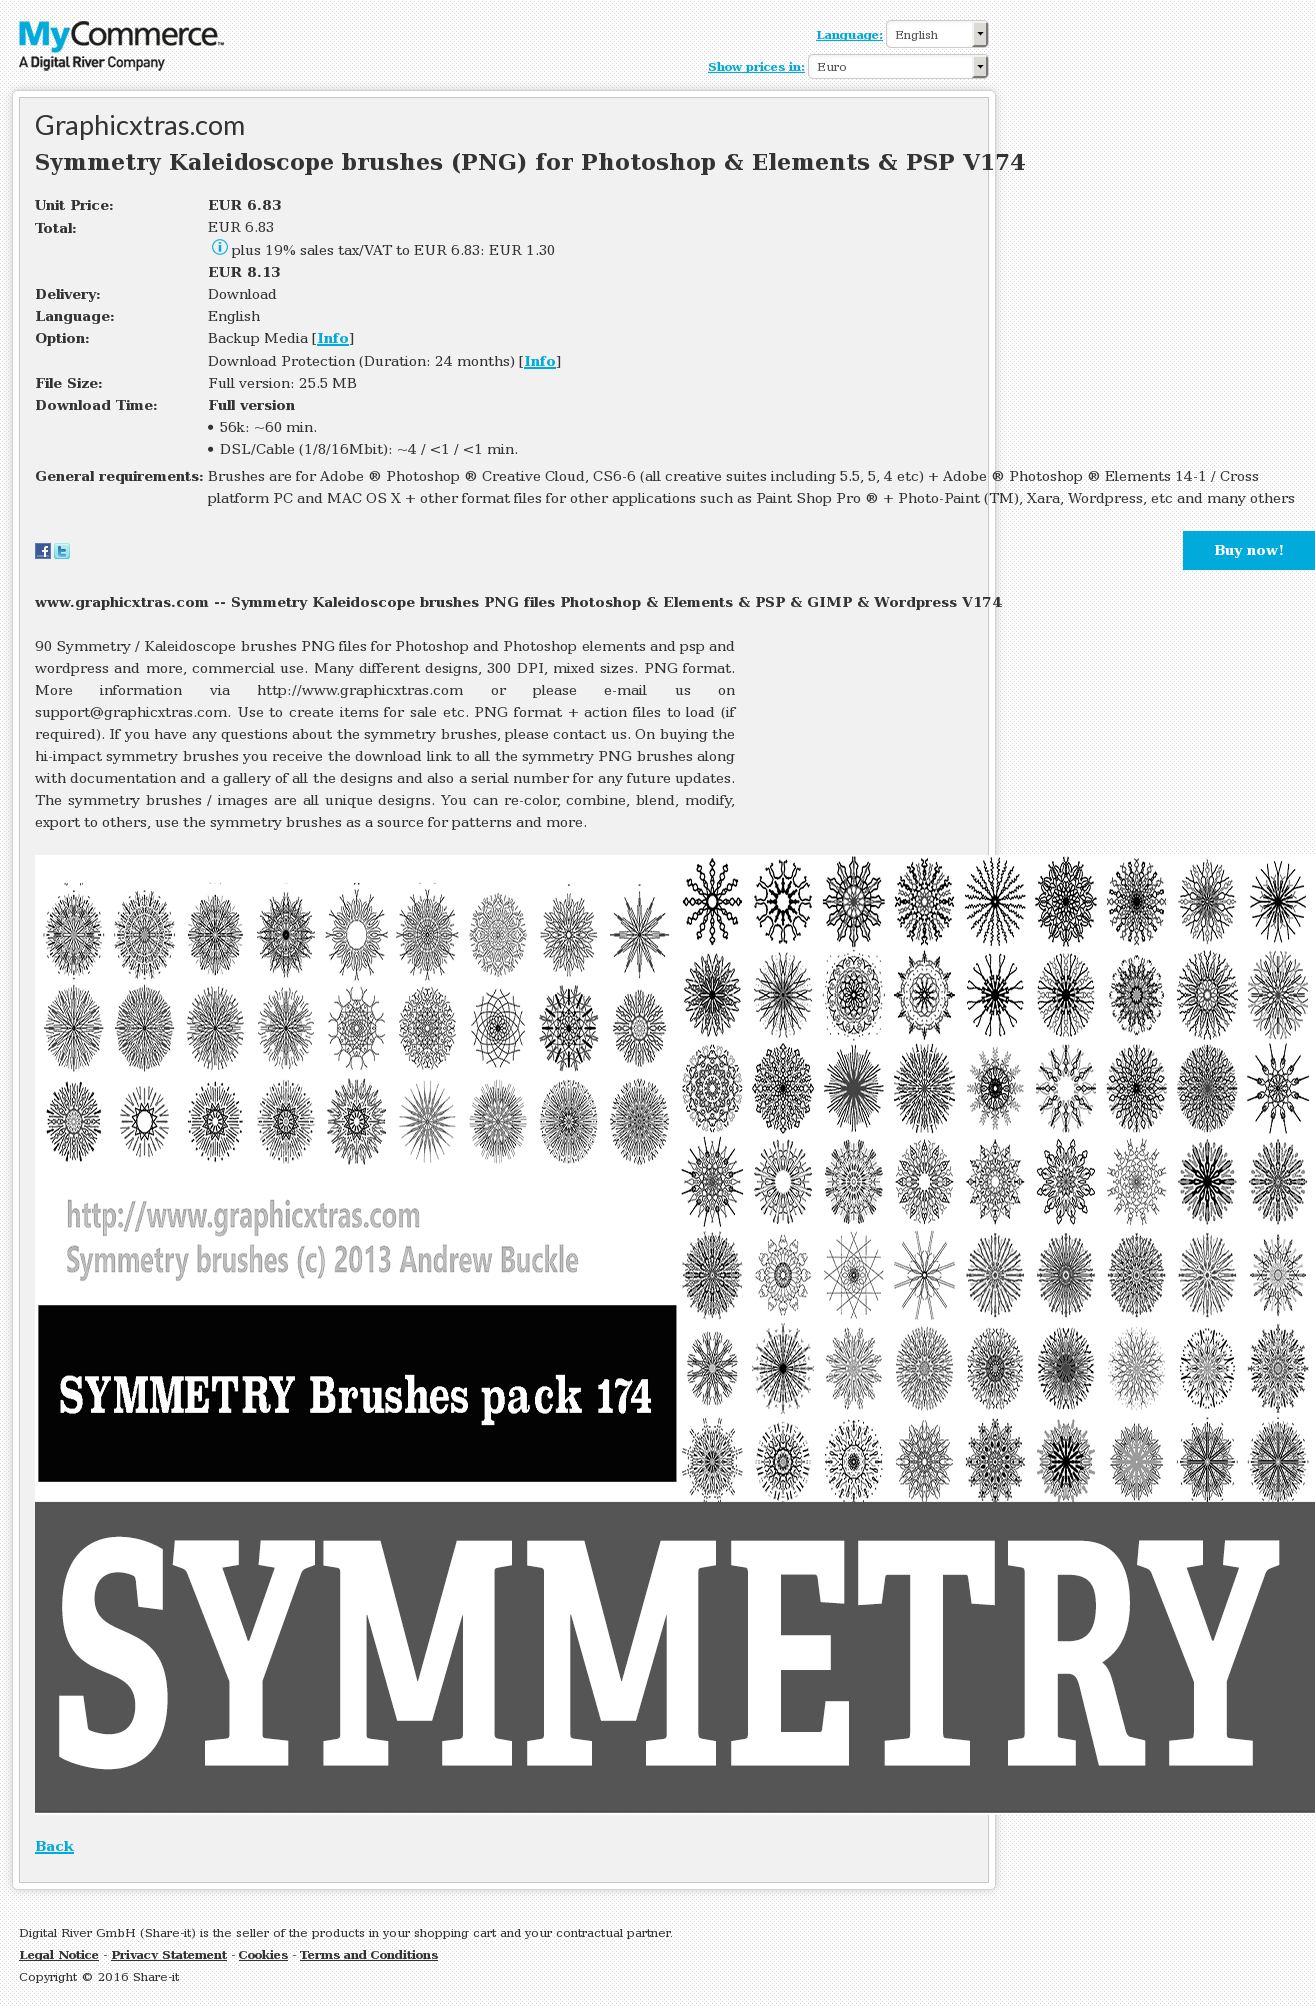 Symmetry Kaleidoscope Brushes Png Photoshop Elements Psp Review